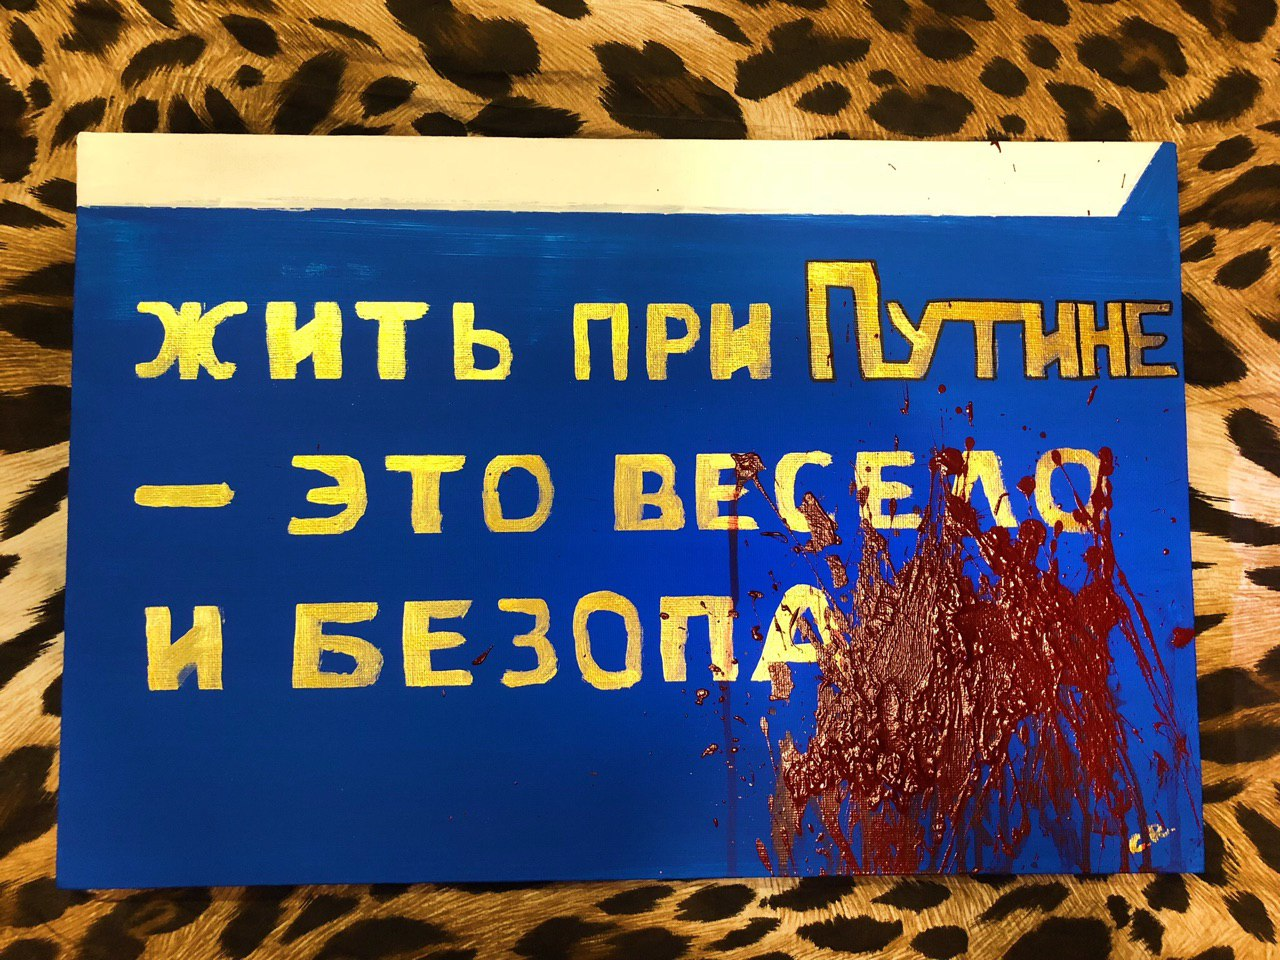 Картина «Весело и безопасно», 2018. Художник: Colonel Royce